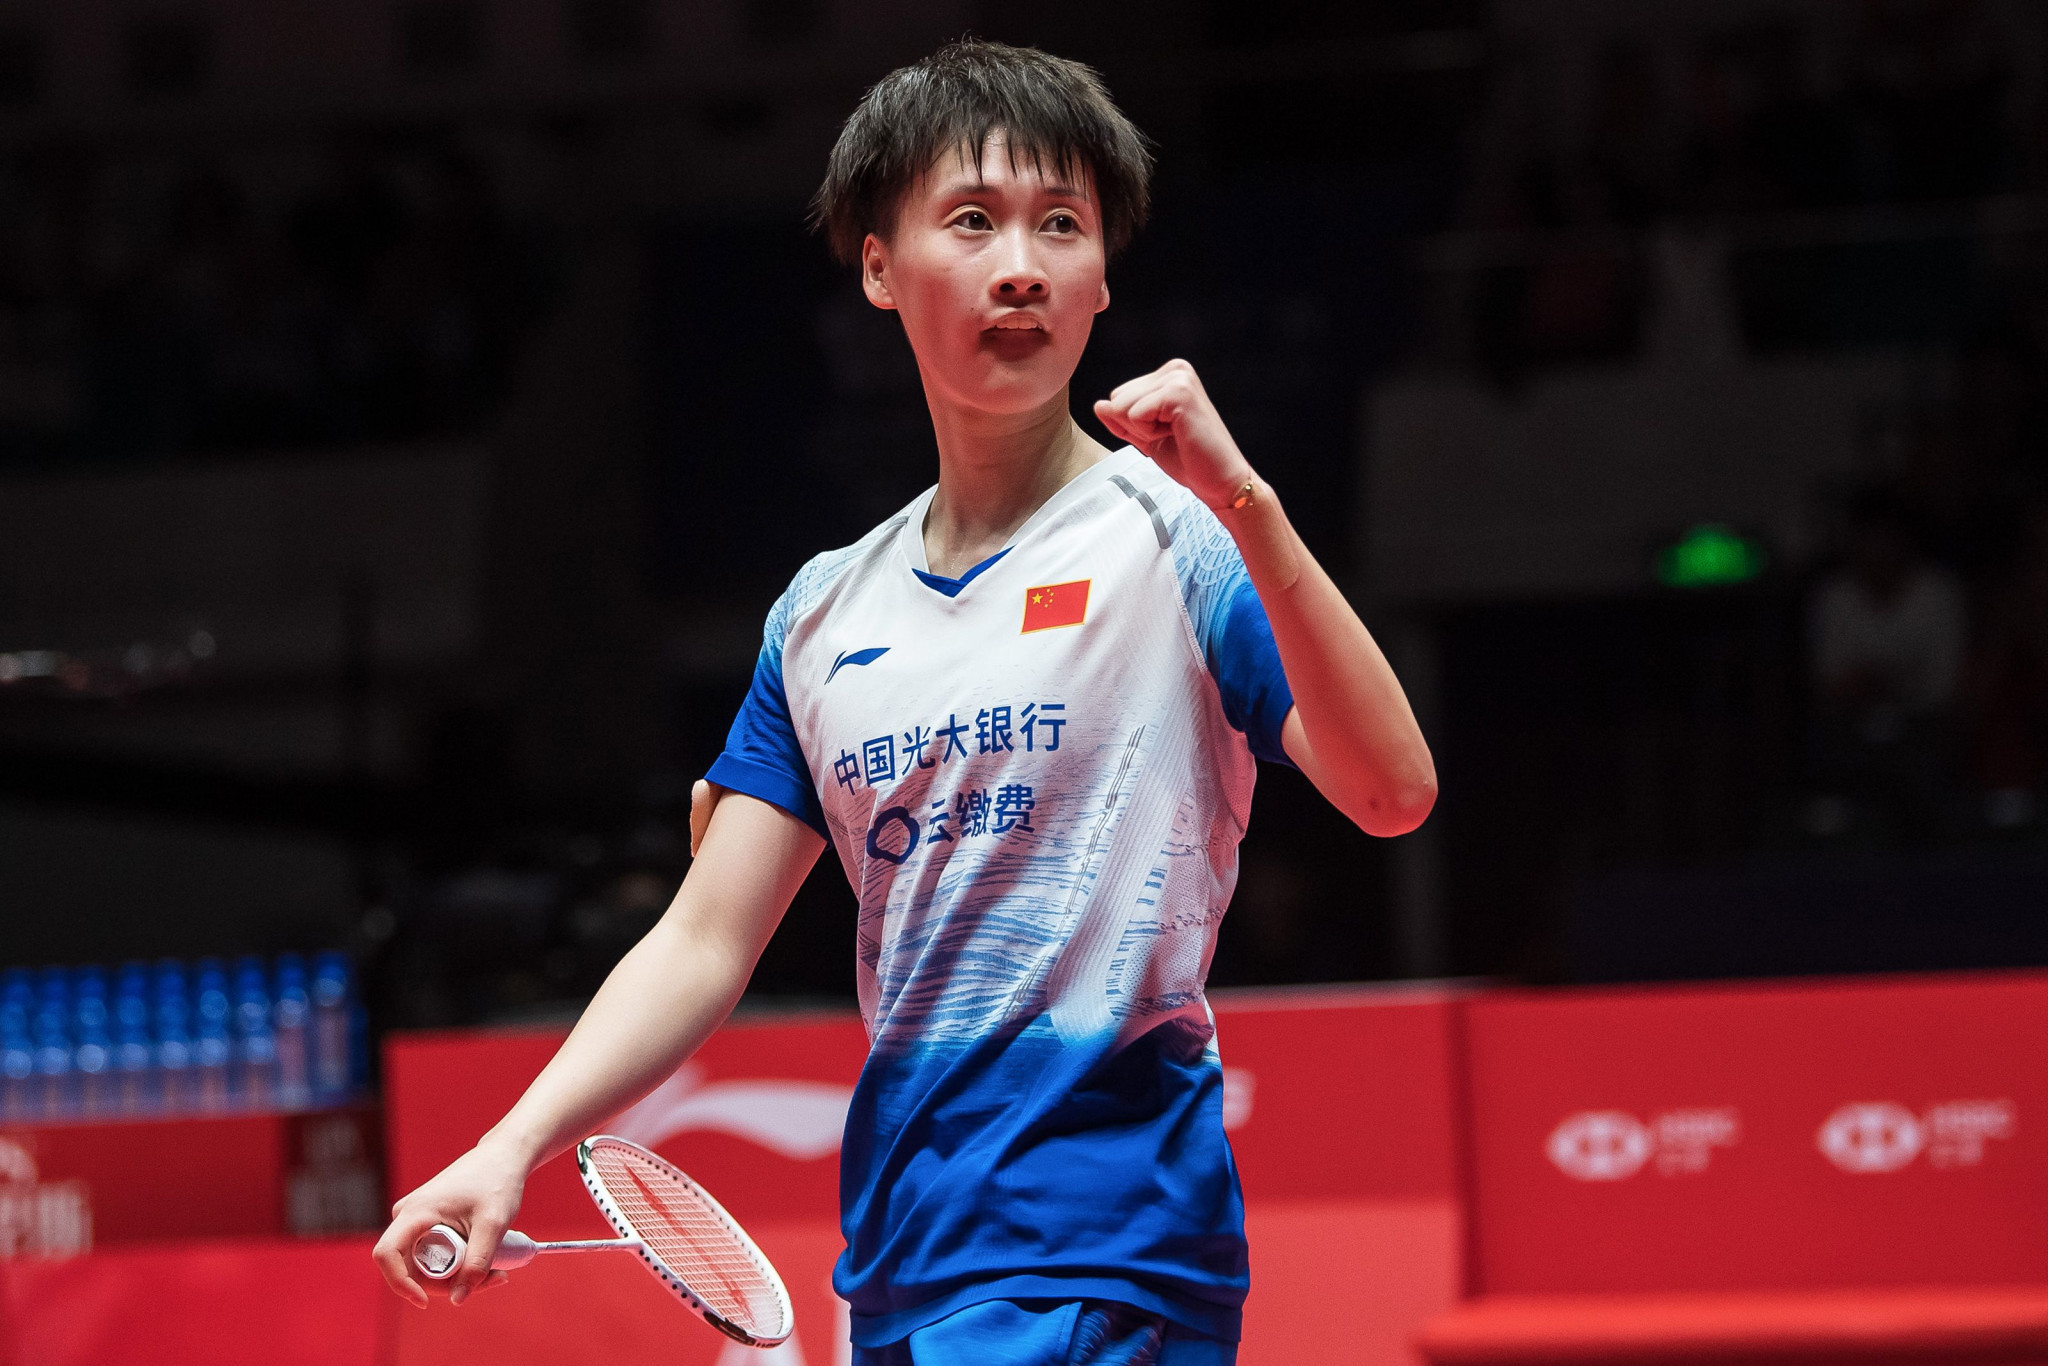 China's Chen Yufei advanced to the women's singles final ©Getty Images